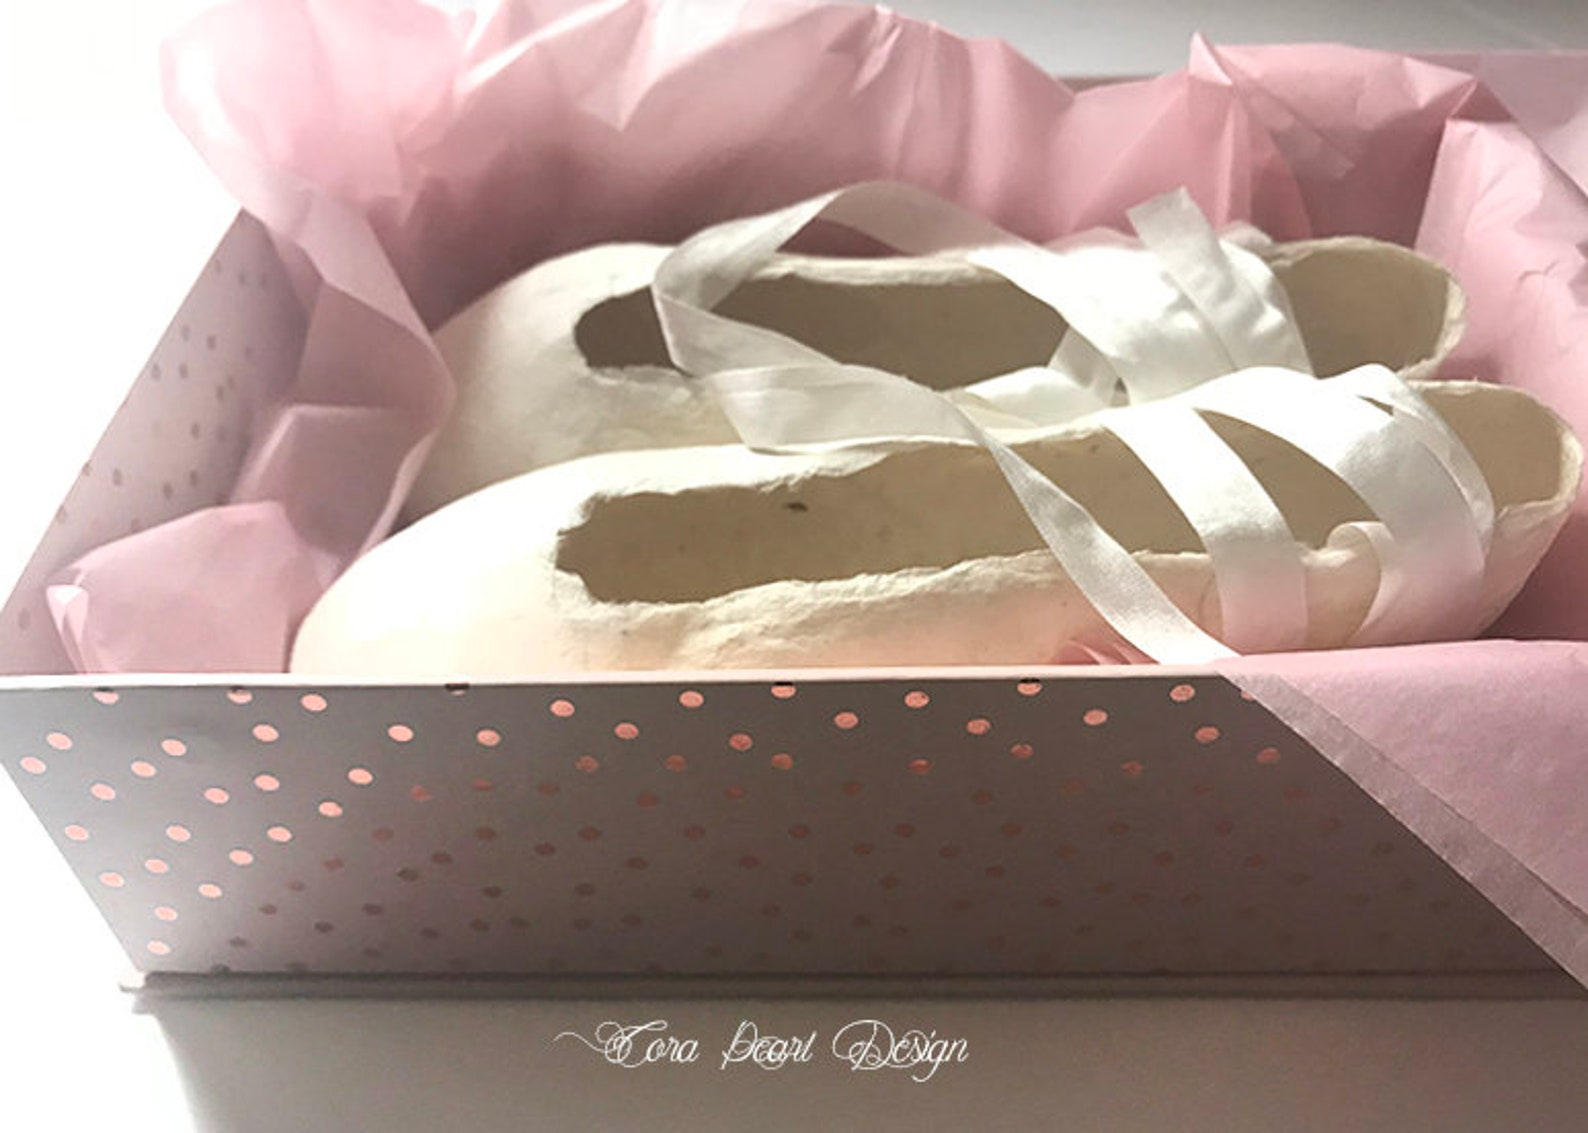 limited edition ivory paper pointe shoes gift boxed - paper ballet shoes - decorative shoes - ballet gifts - shabby chic decor b